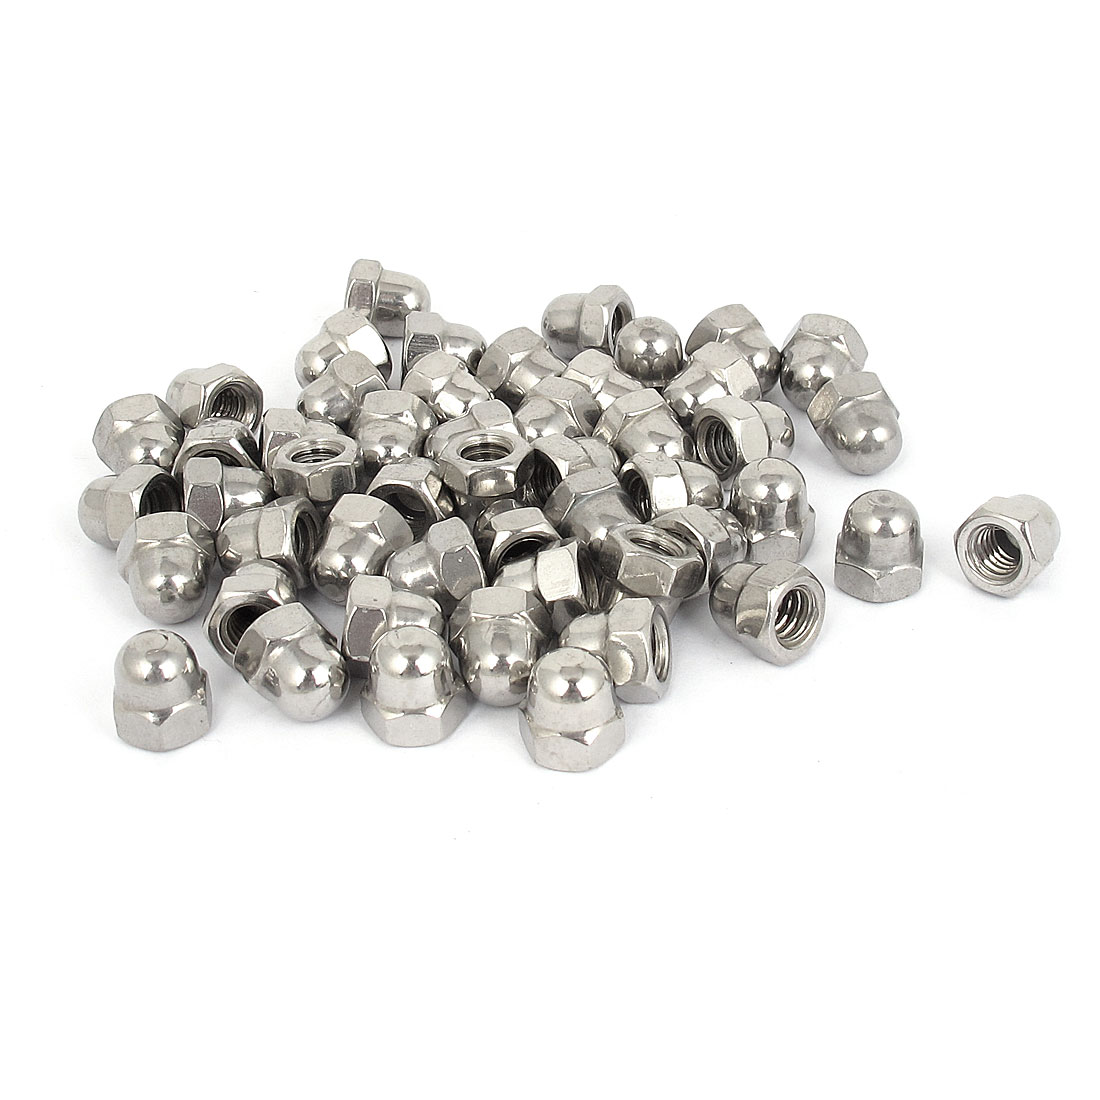 "1/4""-20 304 Stainless Steel Dome Head Cap Acorn Hex Nuts 50Pcs"